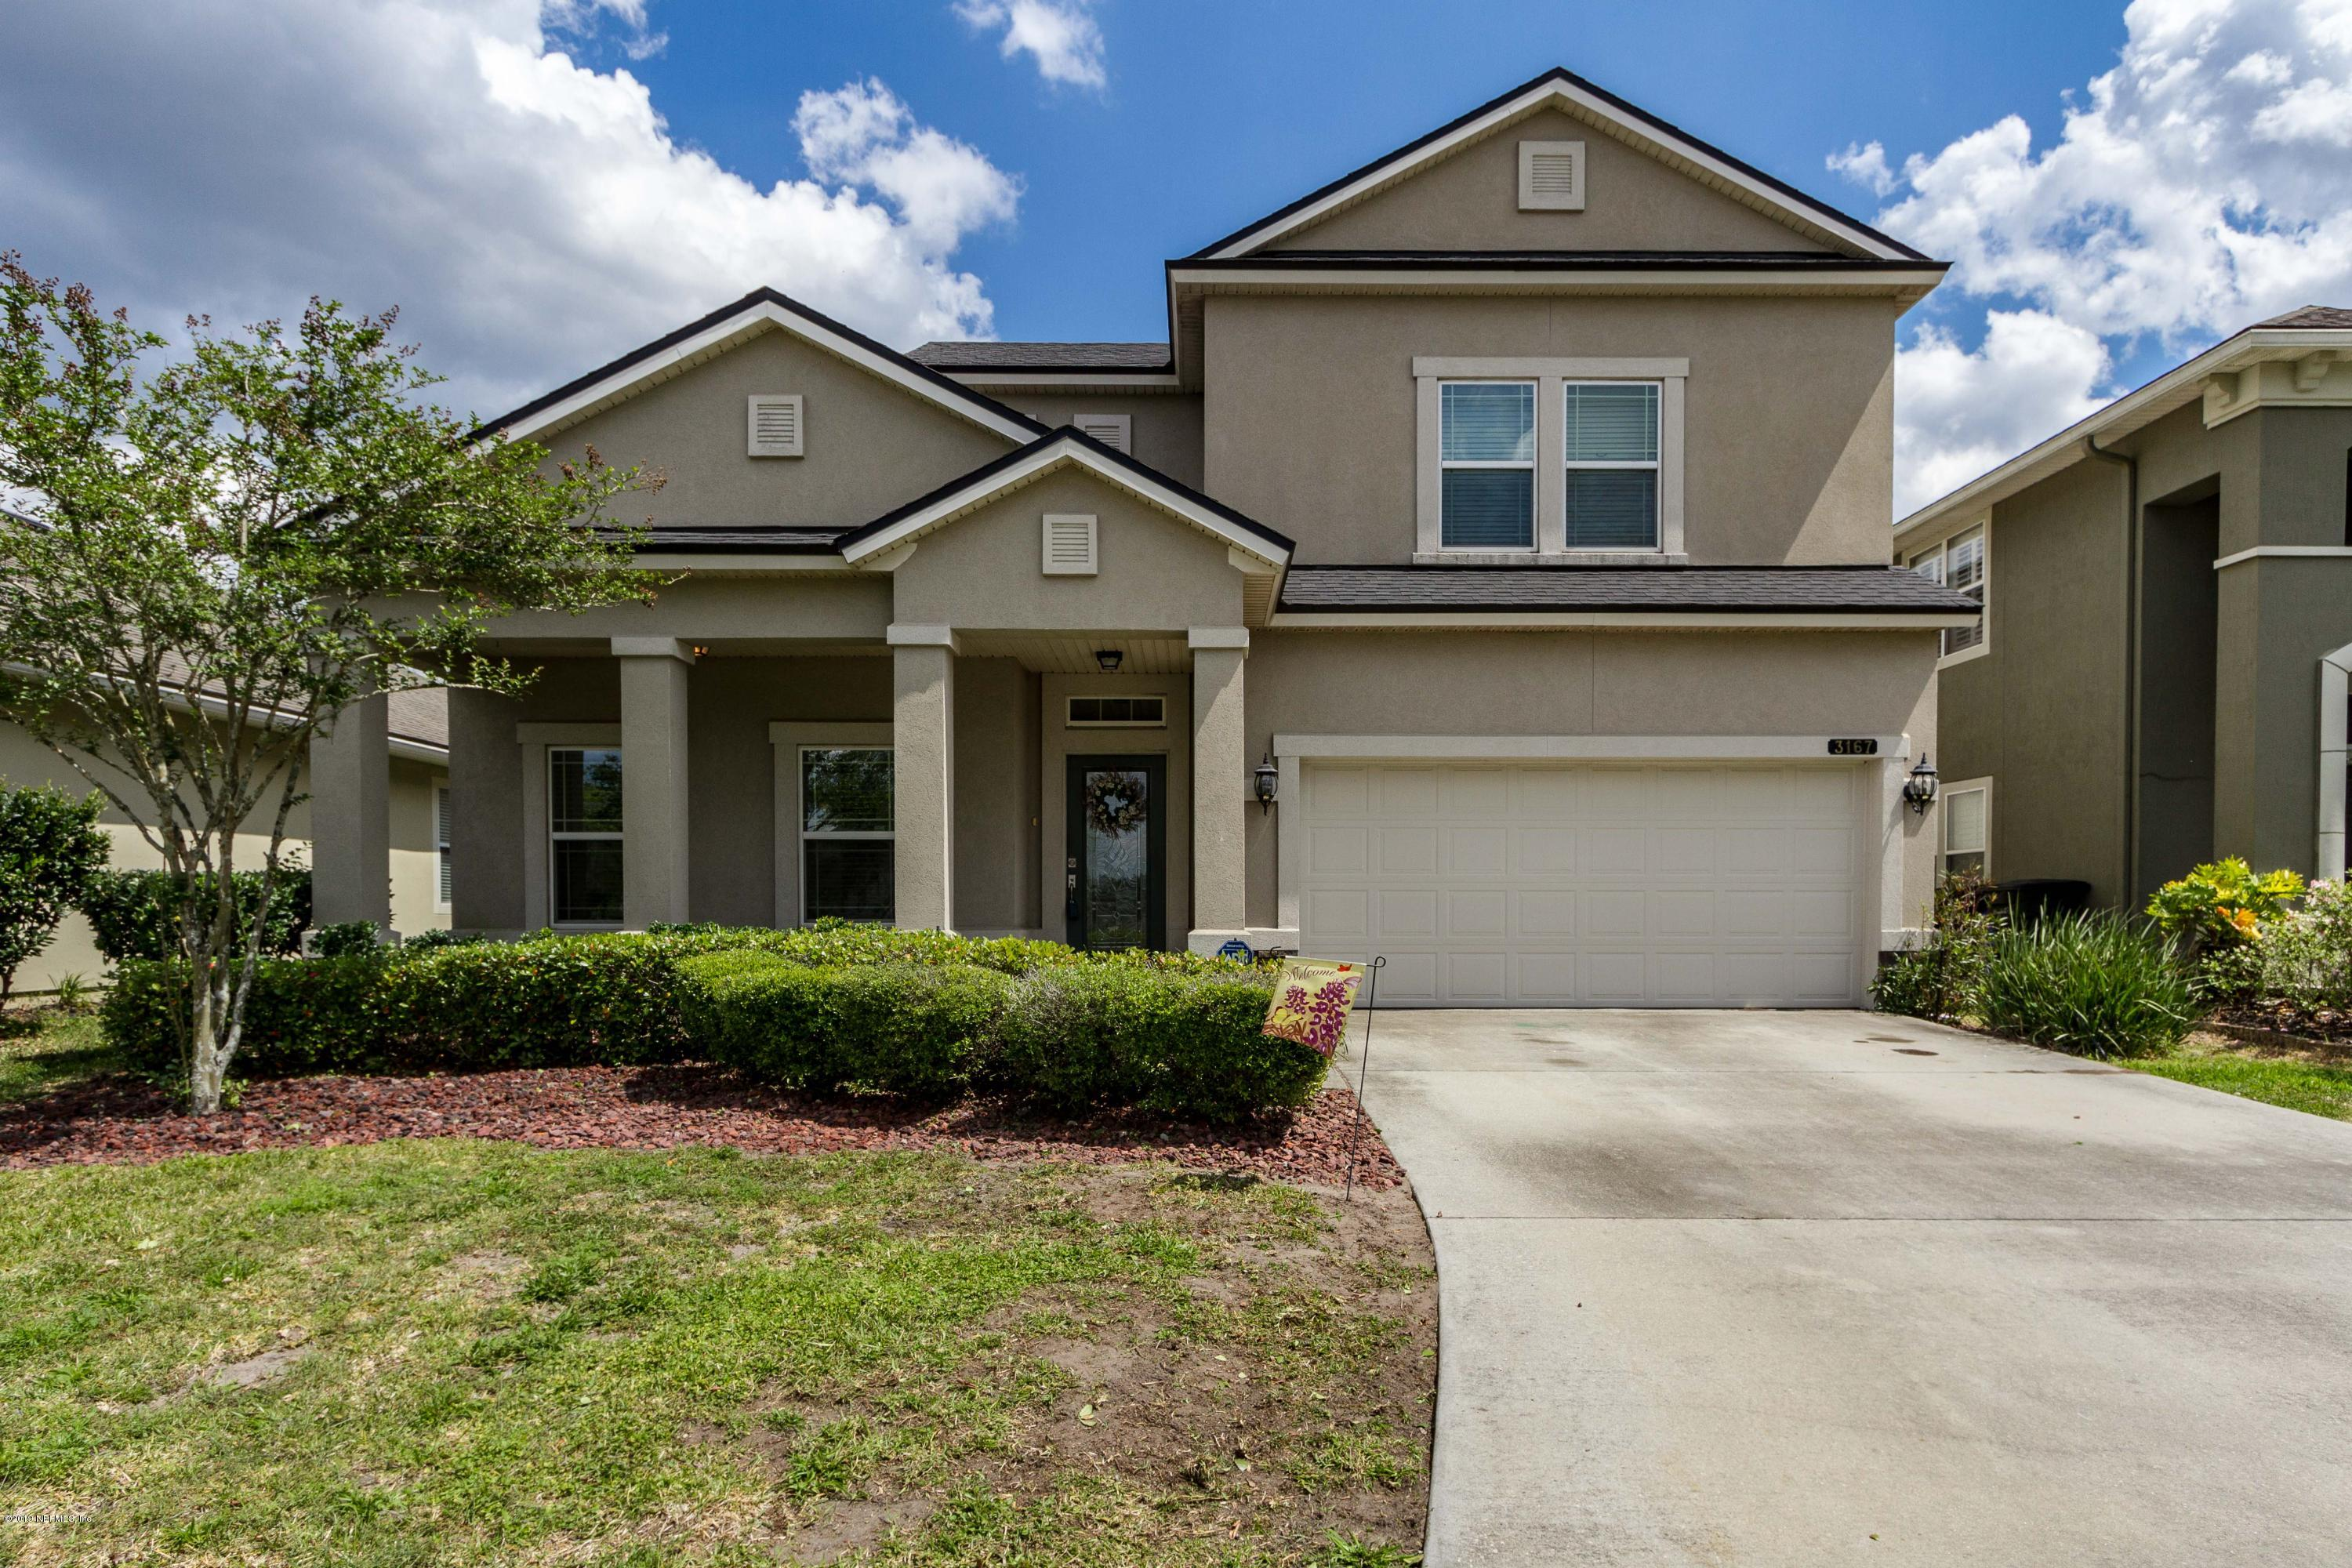 3167 HIDDEN MEADOWS, GREEN COVE SPRINGS, FLORIDA 32043, 4 Bedrooms Bedrooms, ,2 BathroomsBathrooms,Residential - single family,For sale,HIDDEN MEADOWS,986754